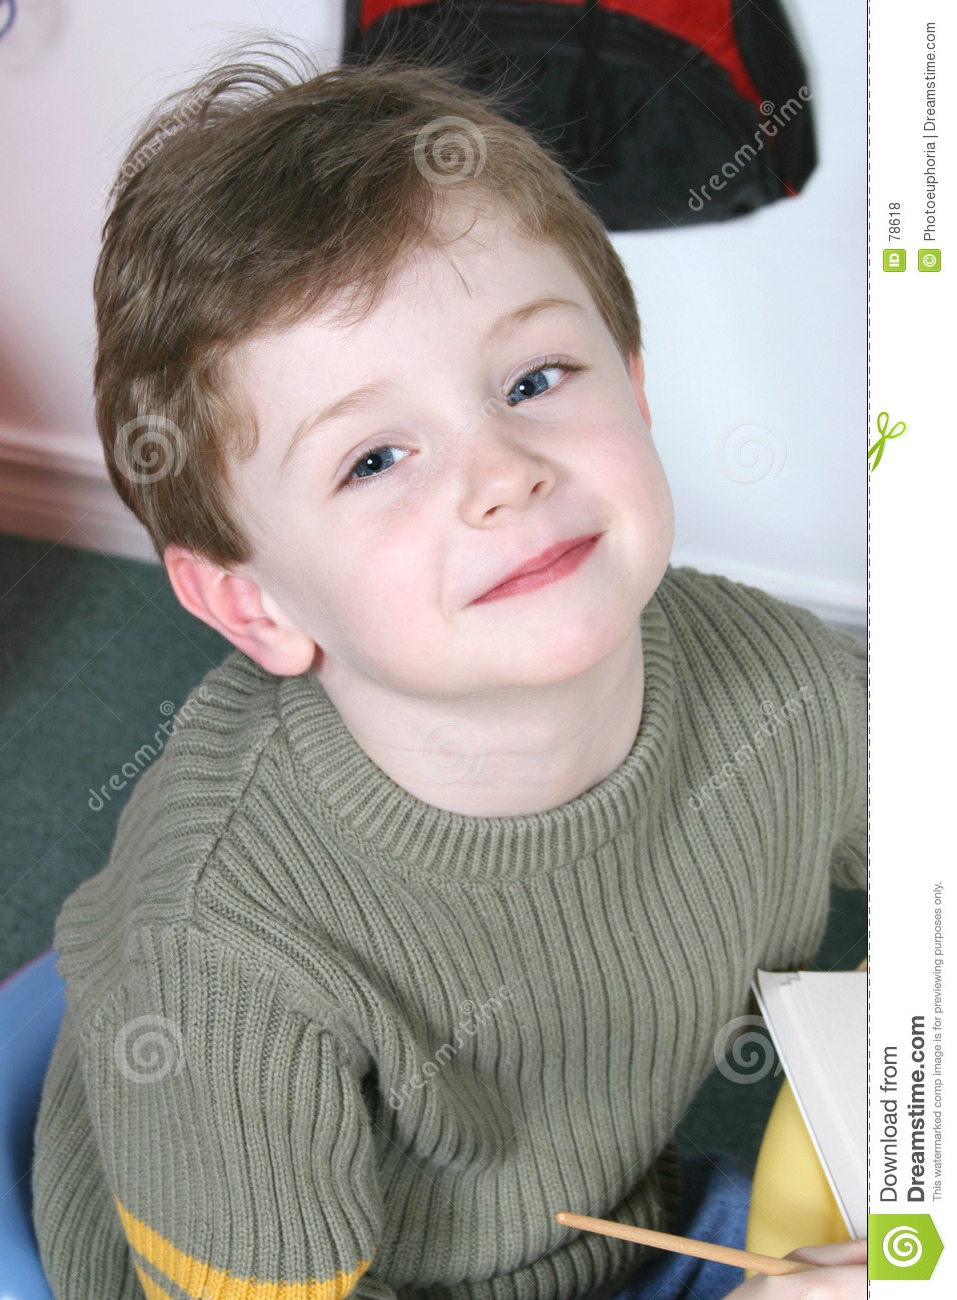 Adorable Four Year Boy With Big Blue Eyes Stock Image: Adorable Four Year Old Boy With Big Blue Eyes Stock Photo